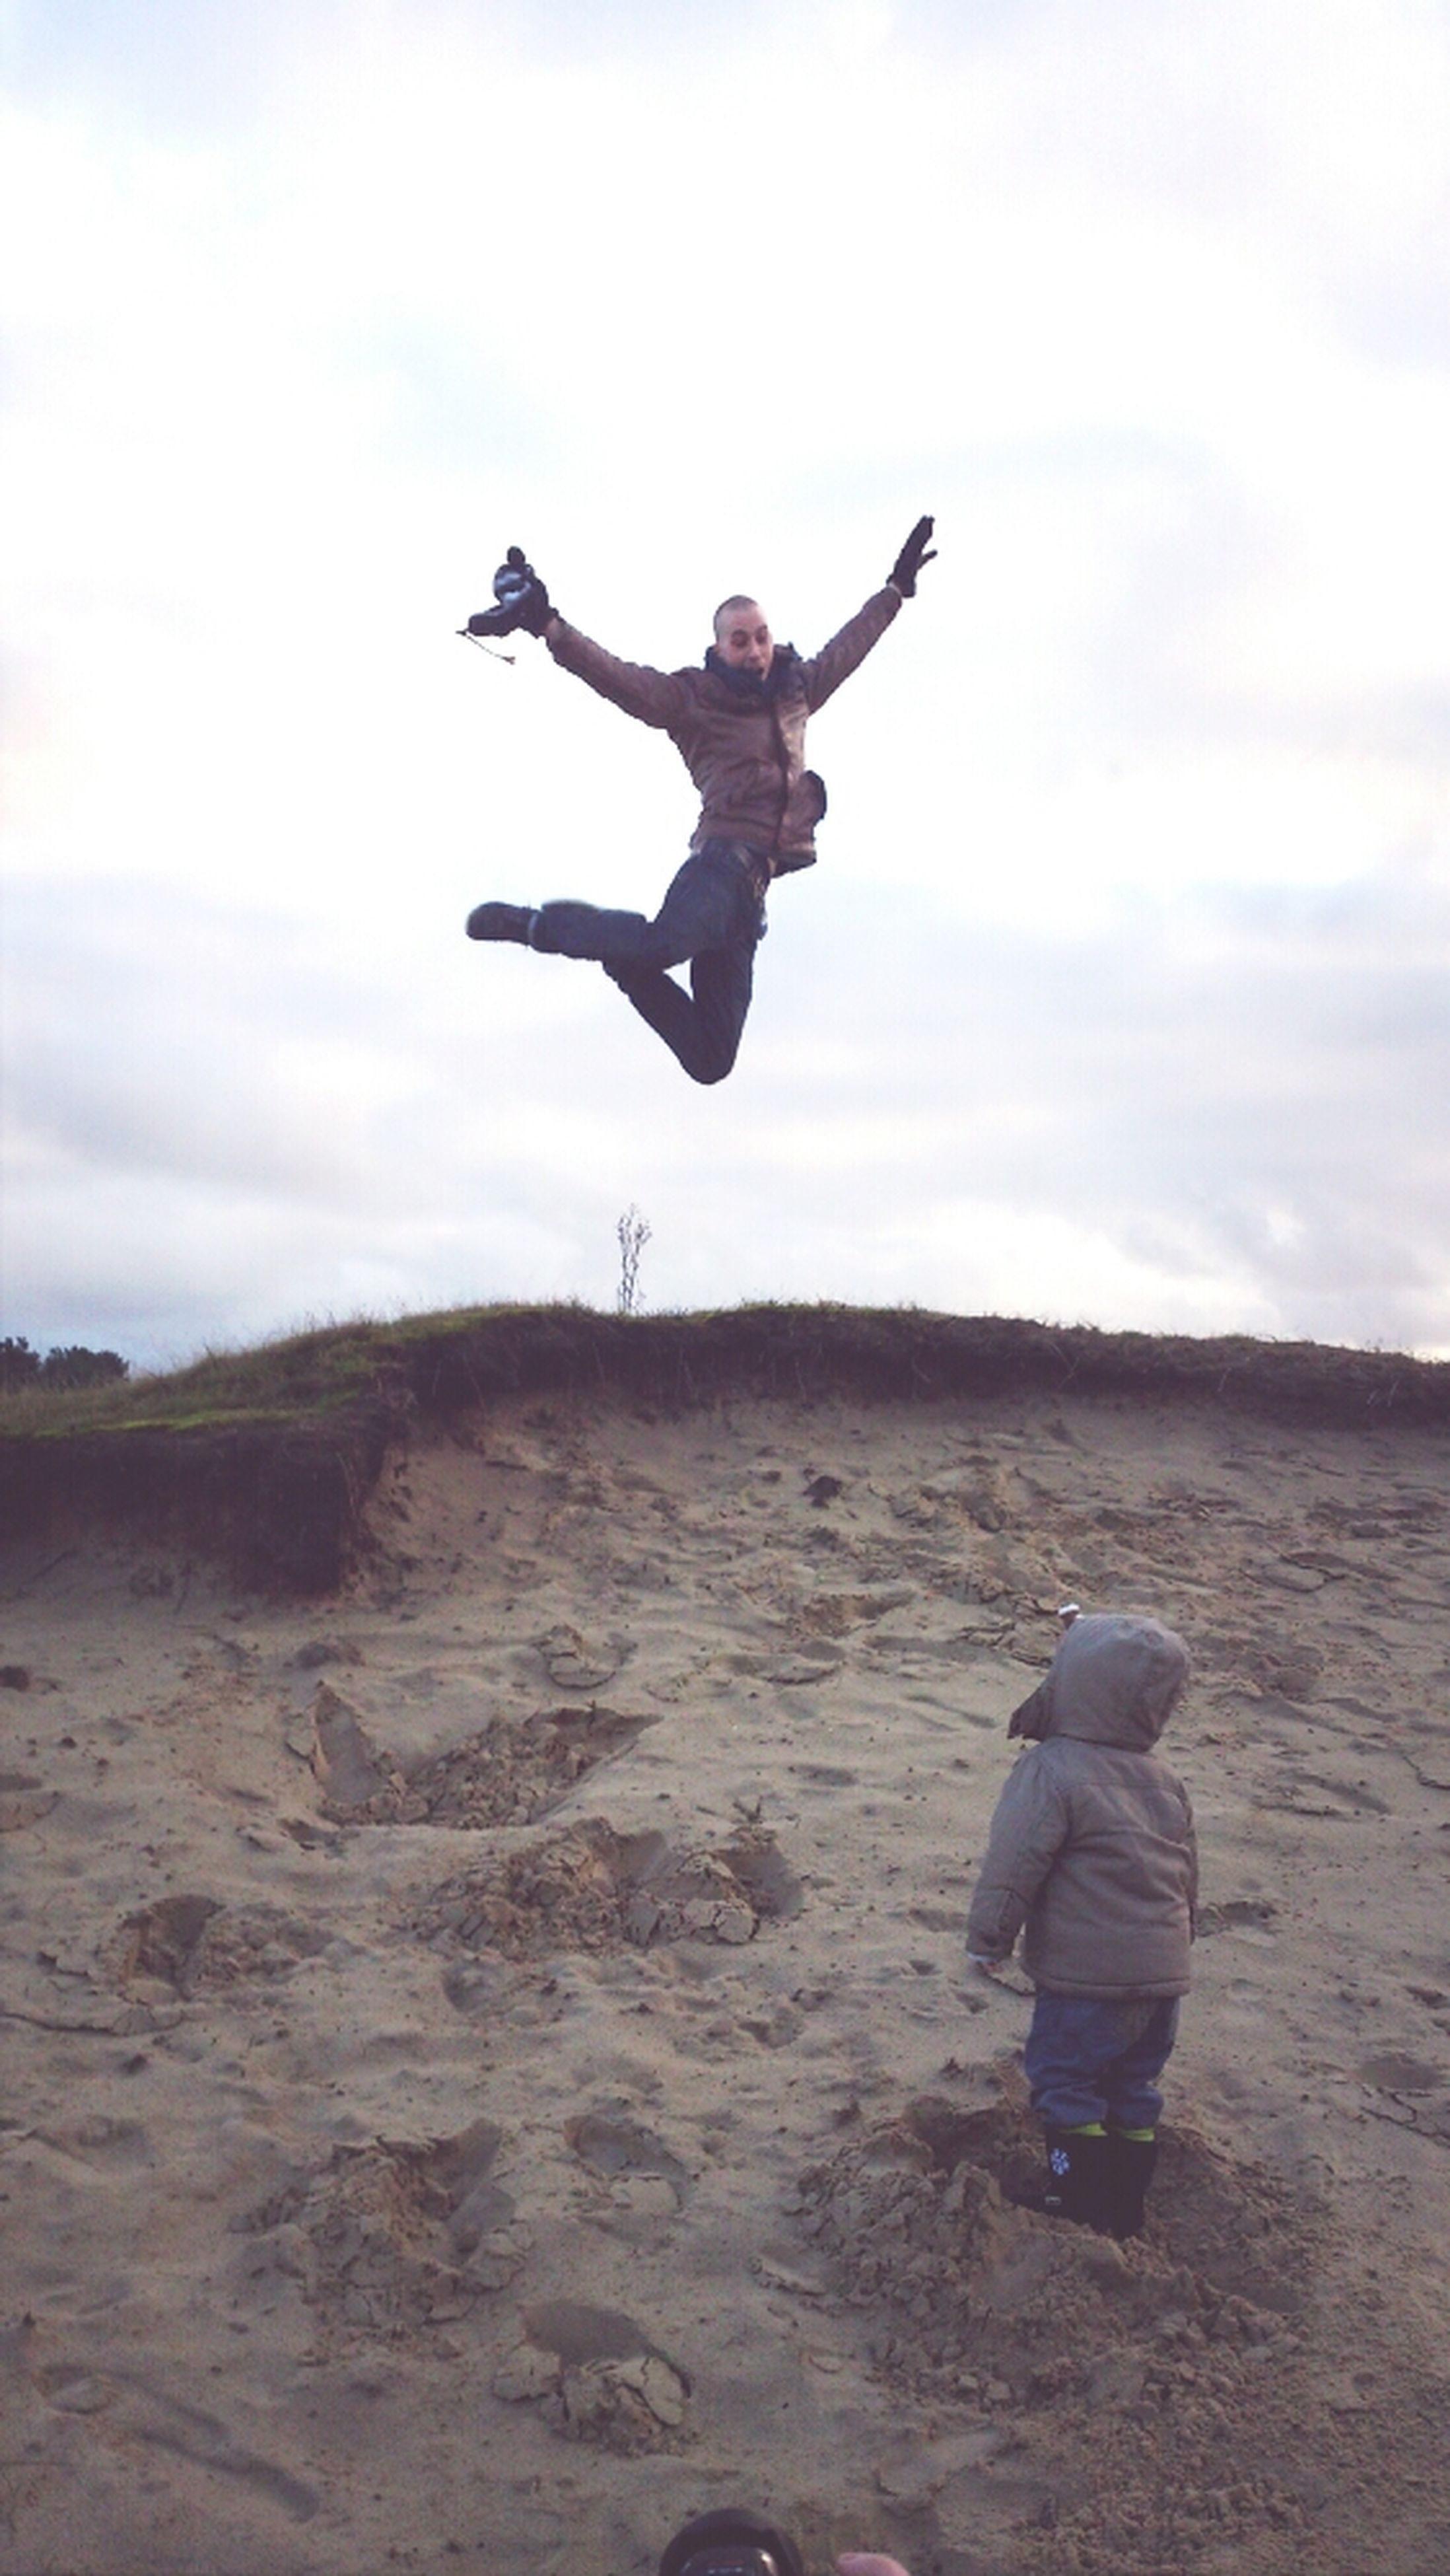 full length, leisure activity, lifestyles, mid-air, sky, arms outstretched, jumping, casual clothing, cloud - sky, childhood, fun, enjoyment, carefree, freedom, men, person, low angle view, vitality